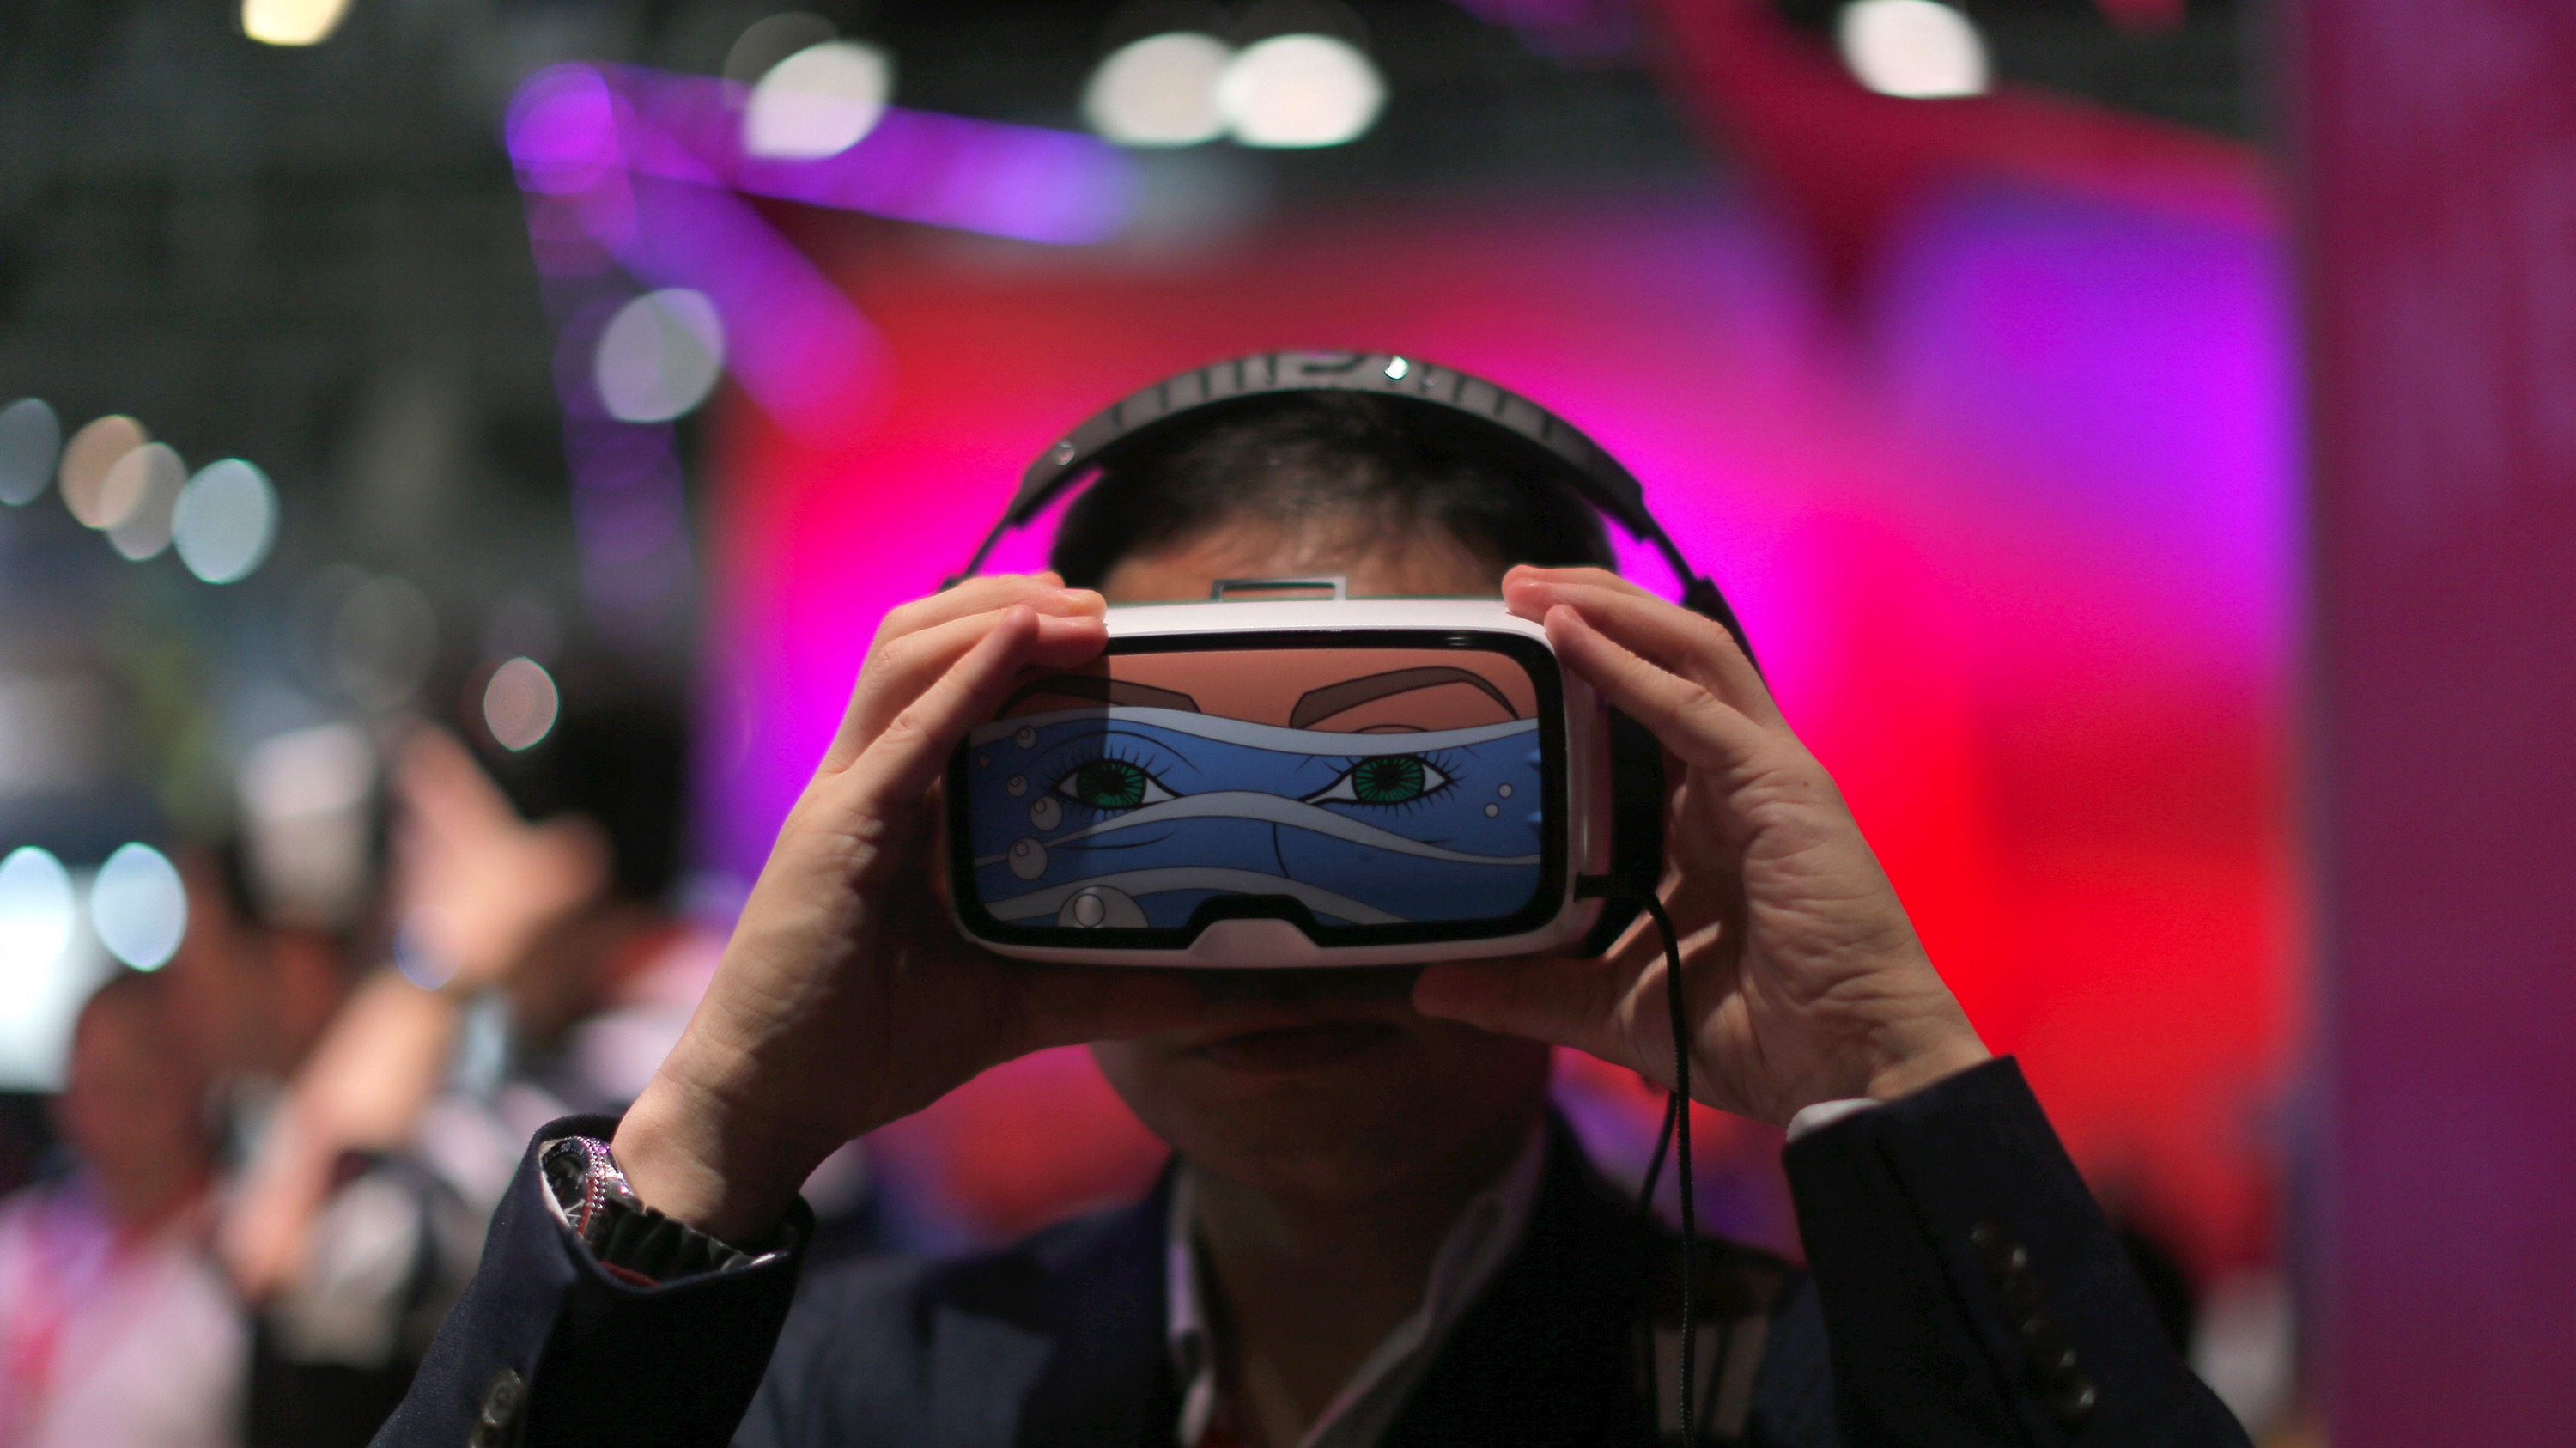 A man uses a virtual reality device during the Mobile World Congress wireless show in Barcelona, Spain, Tuesday, Feb. 23, 2016. (AP Photo/Manu Fernandez)